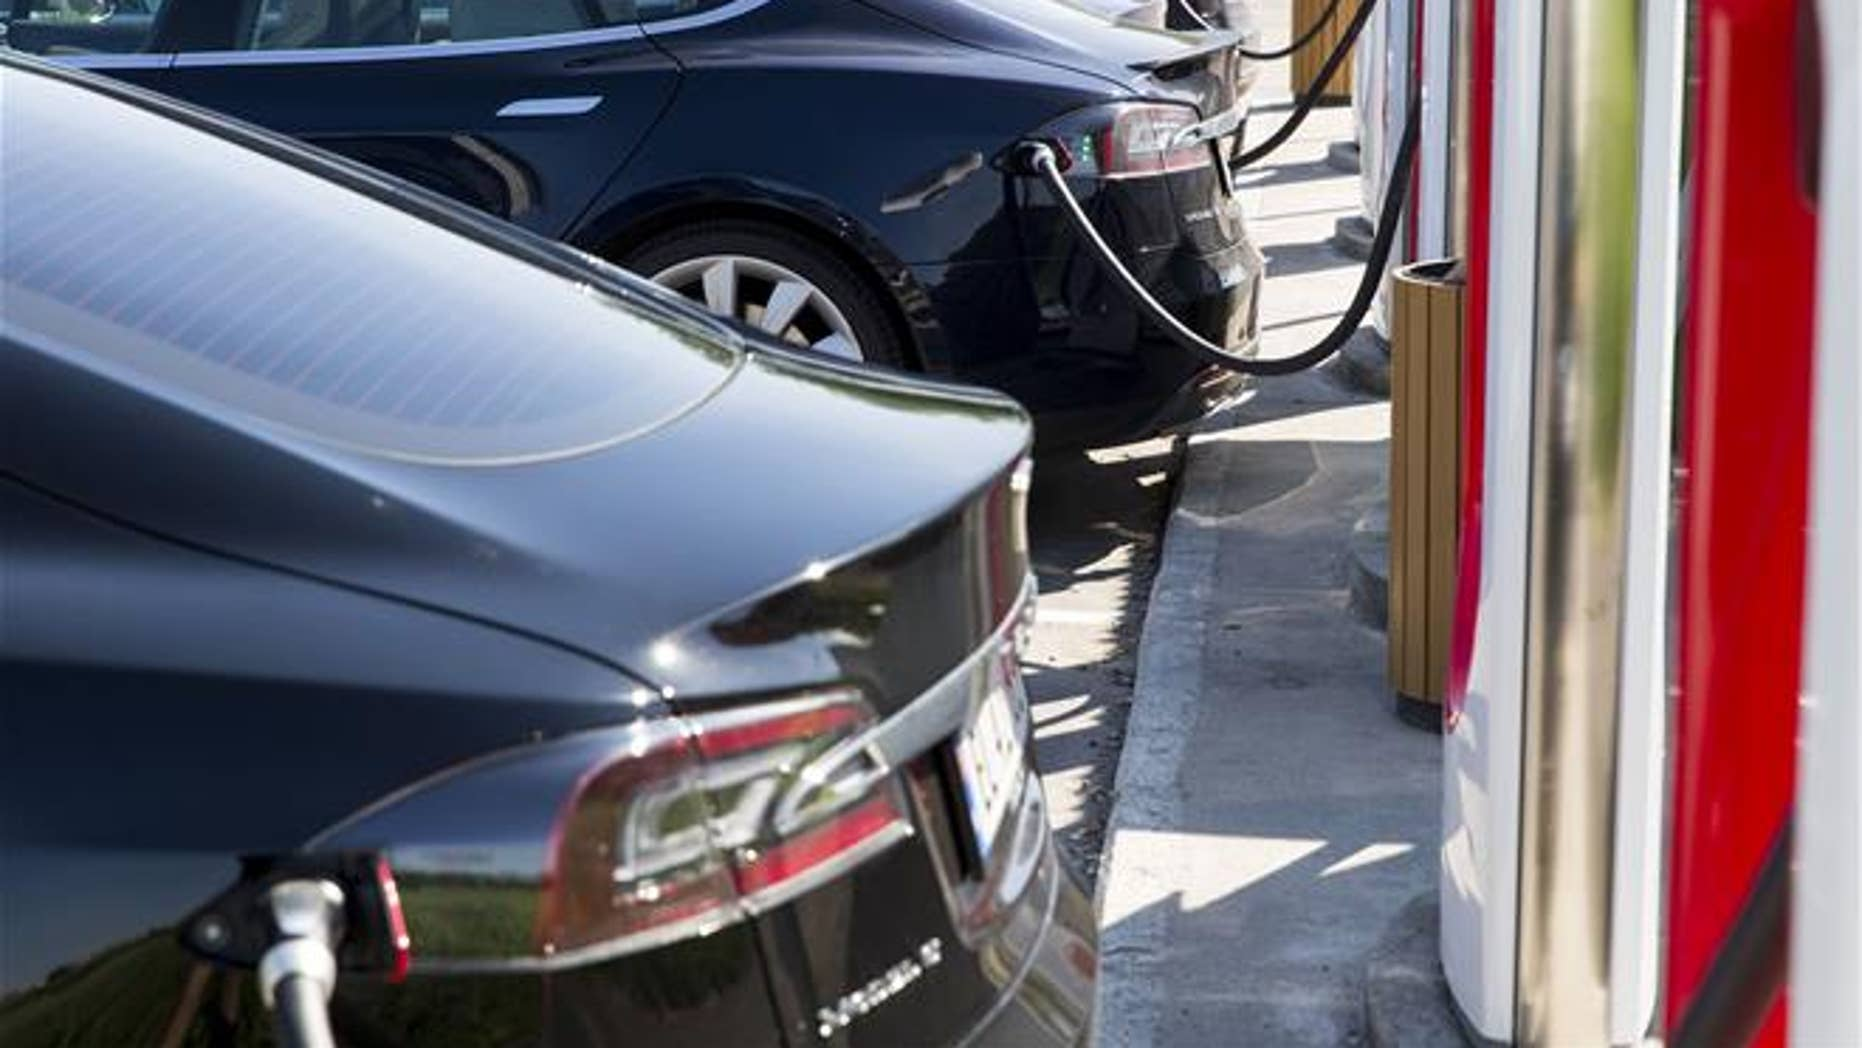 In this June 4, 2016 file photo, electric Tesla cars park at a supercharger facility in Sarpsborg, Norway (Tore Meek / NTB scanpix via AP, File).